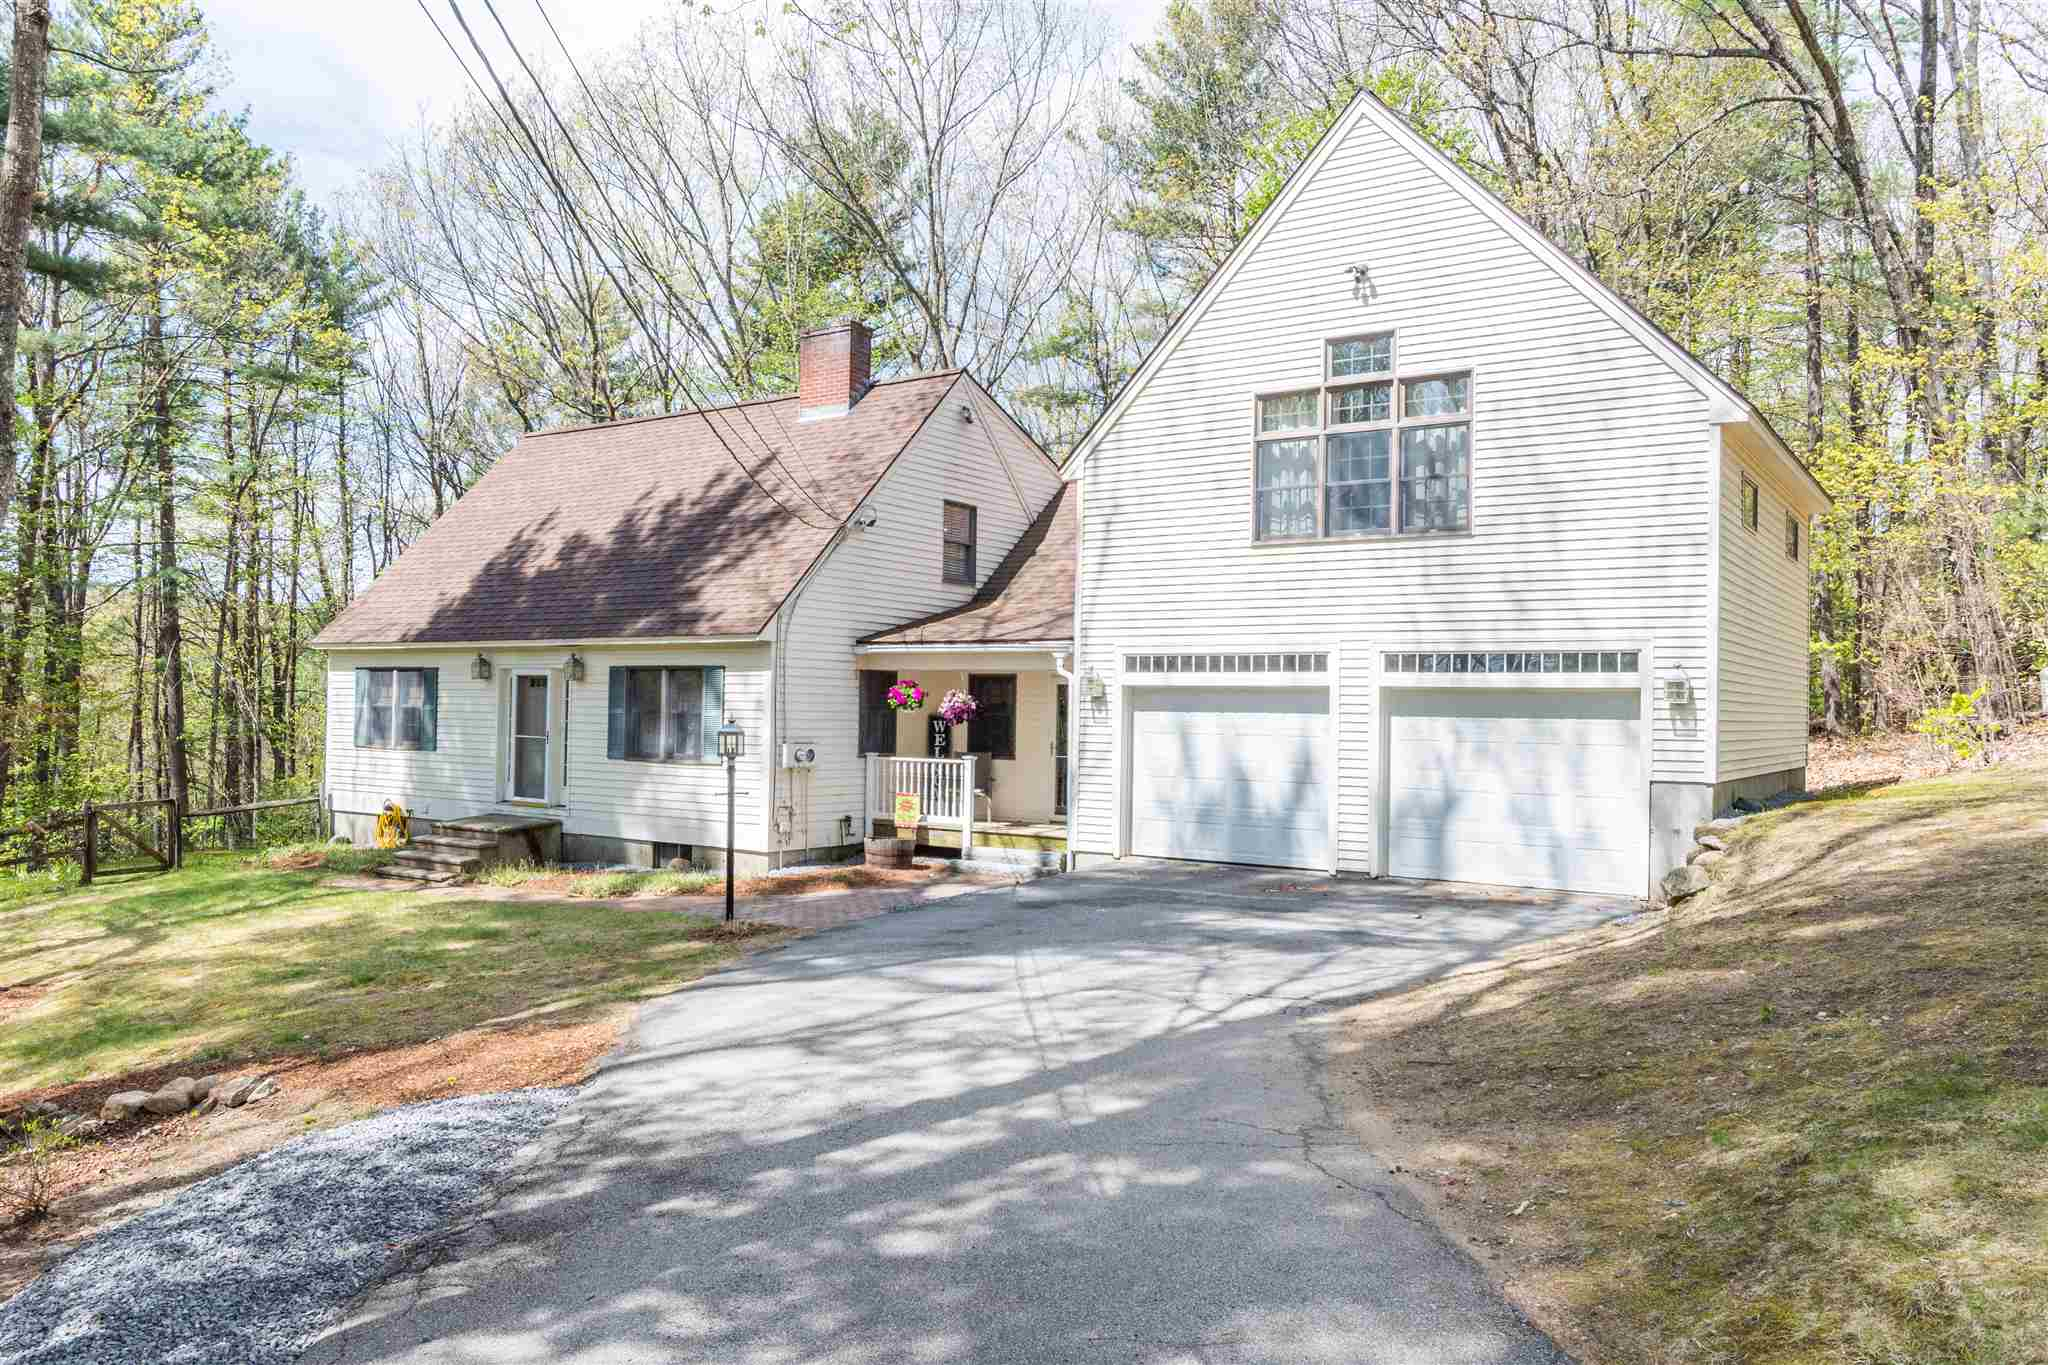 MLS 4806637: 34 Brookview Court, Milford NH